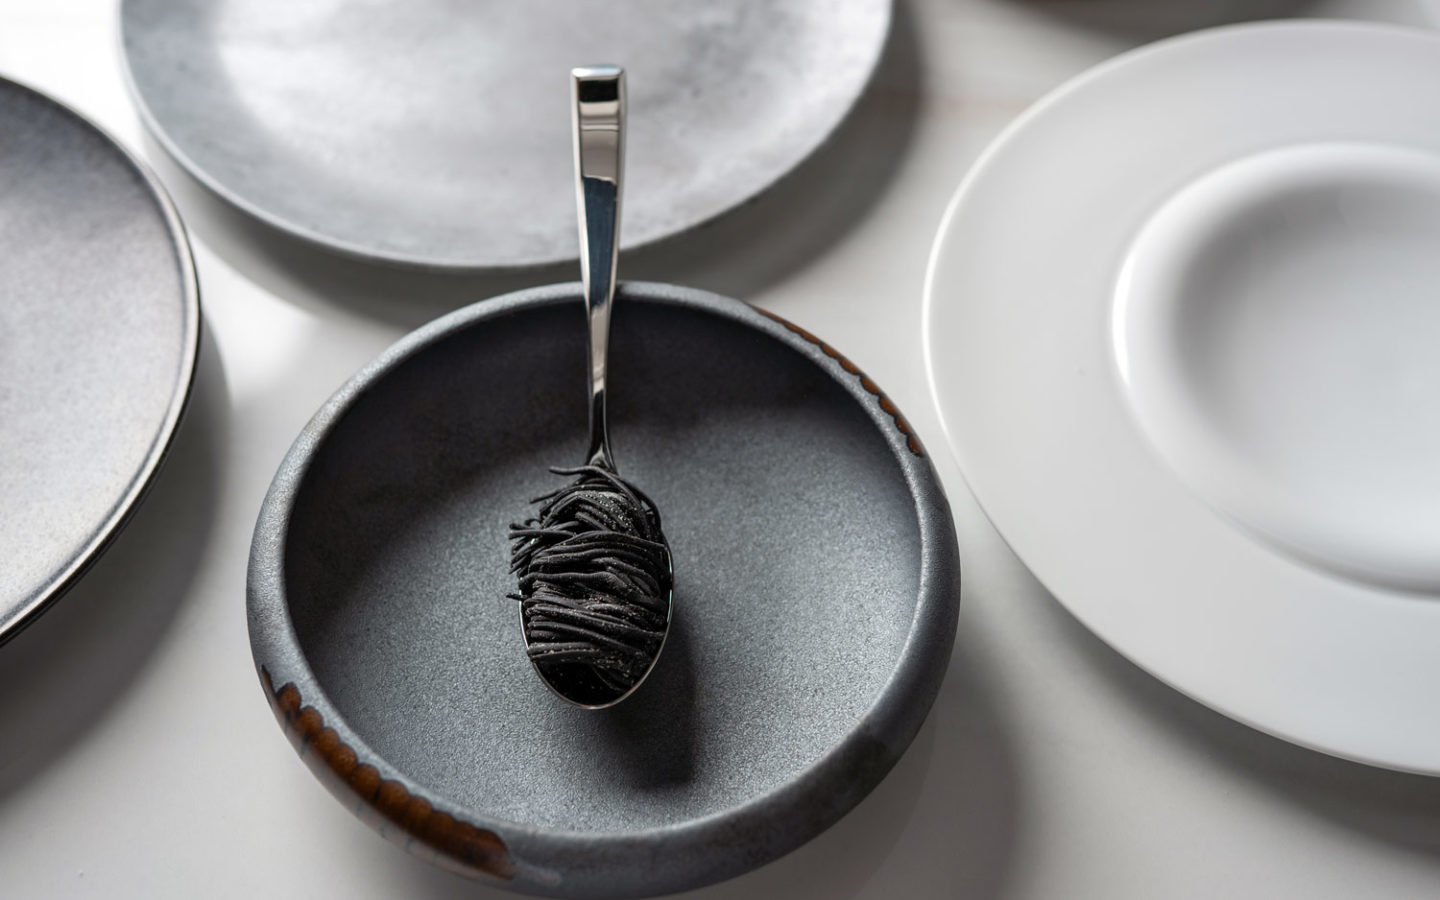 black pasta noodles wrapped around stainless steel spoon